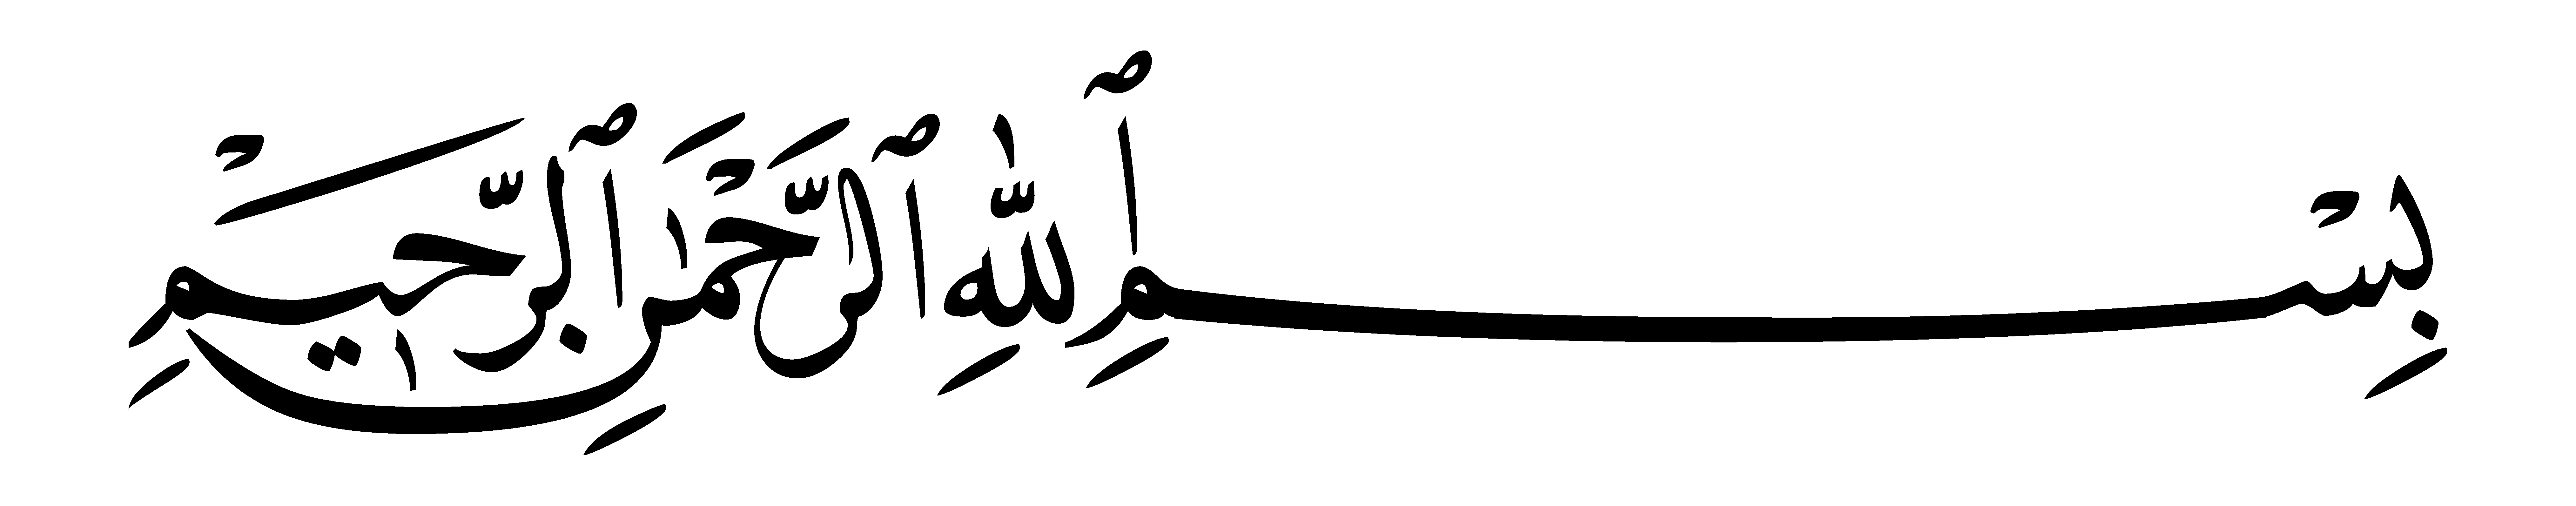 lebanon in arabic writing Arabic language can be divided into two versions modern arabic and classical arabic classical arabic is the official language and it is the language of the quran classical arabic does not change and it is the only way for you to learn arabic language in an academic way.